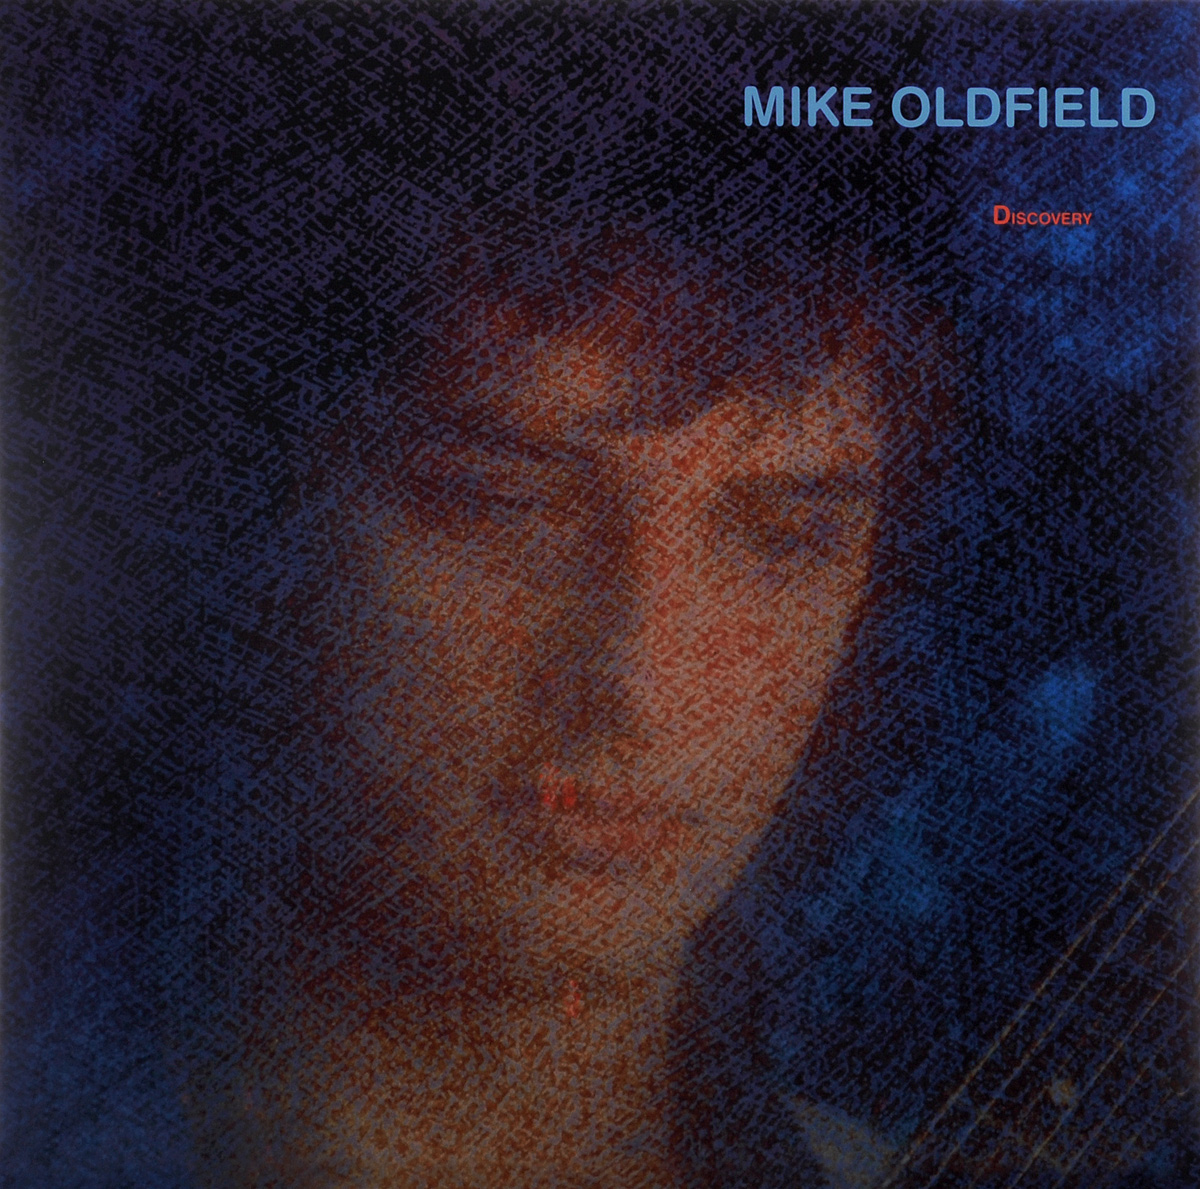 Майк Олдфилд Mike Oldfield. Discovery (LP) original new innolux 5 6 inch at056tn53 v 1 lcd screen with touch